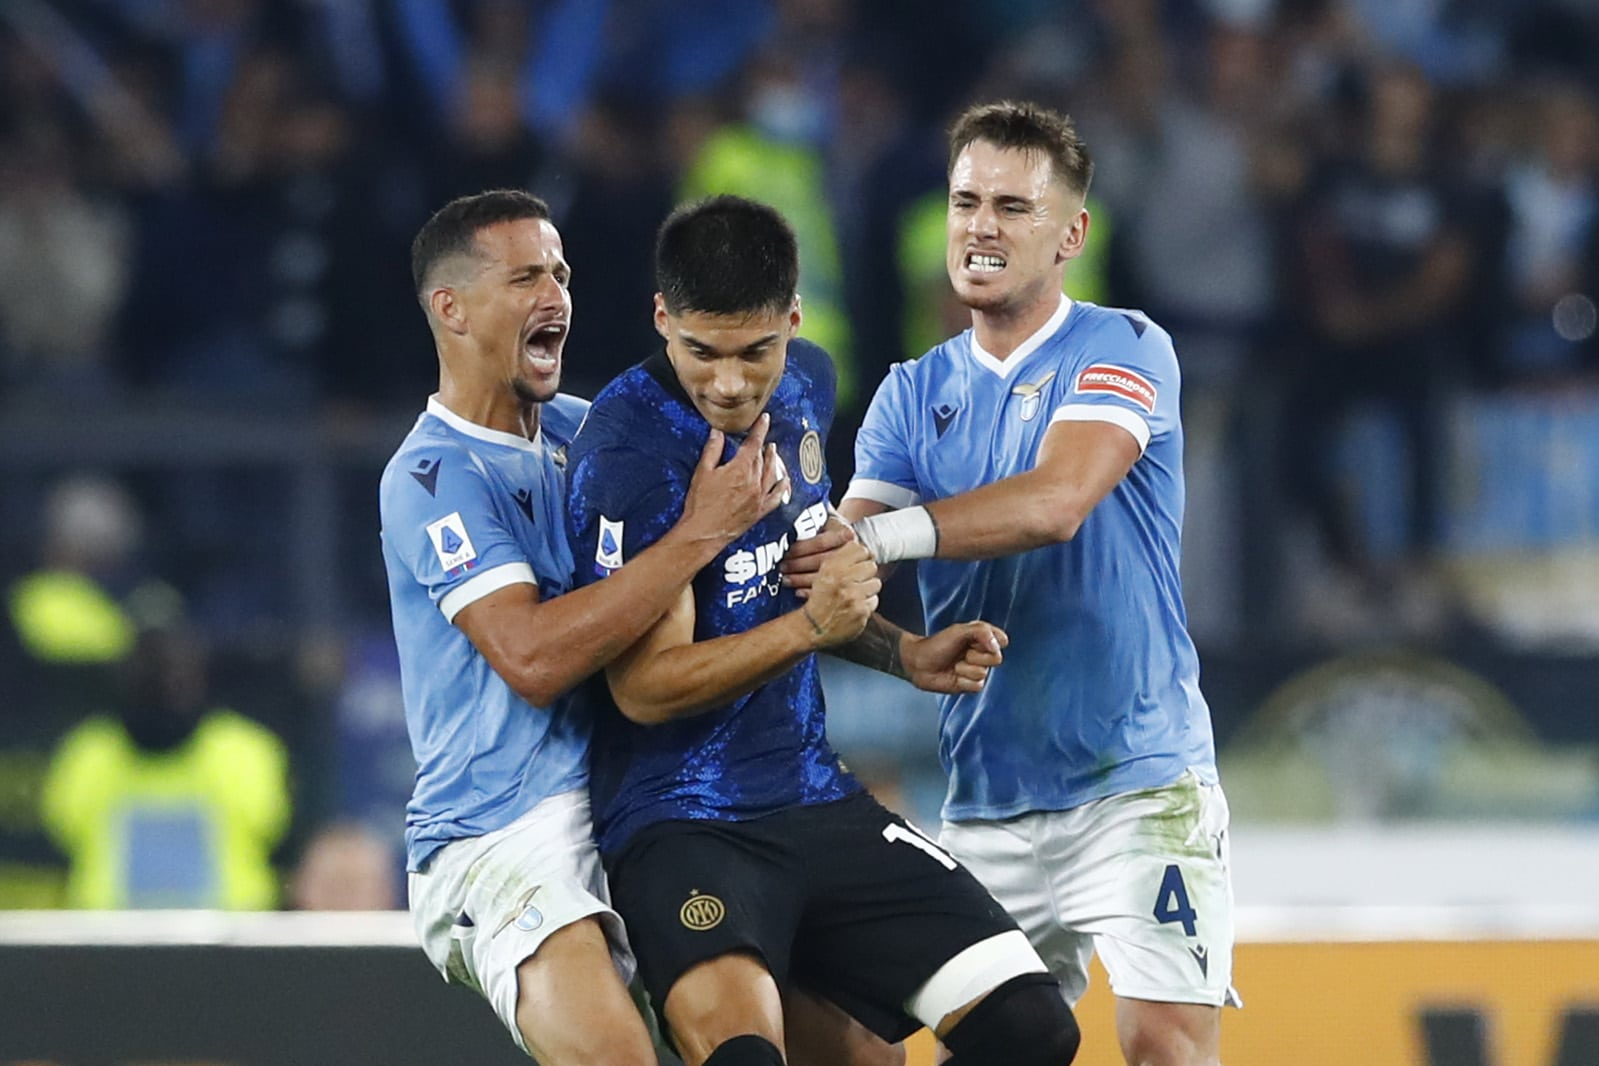 ROME, ITALY - OCTOBER 16: (BILD OUT) Luiz Felipe of SS Lazio and Joaquin Correa of FC Internazionale discuss after the Serie A match between SS Lazio and FC Internazionale at Stadio Olimpico on October 16, 2021 in Rome, Italy. (Photo by Matteo Ciambelli/DeFodi Images via Getty Images)